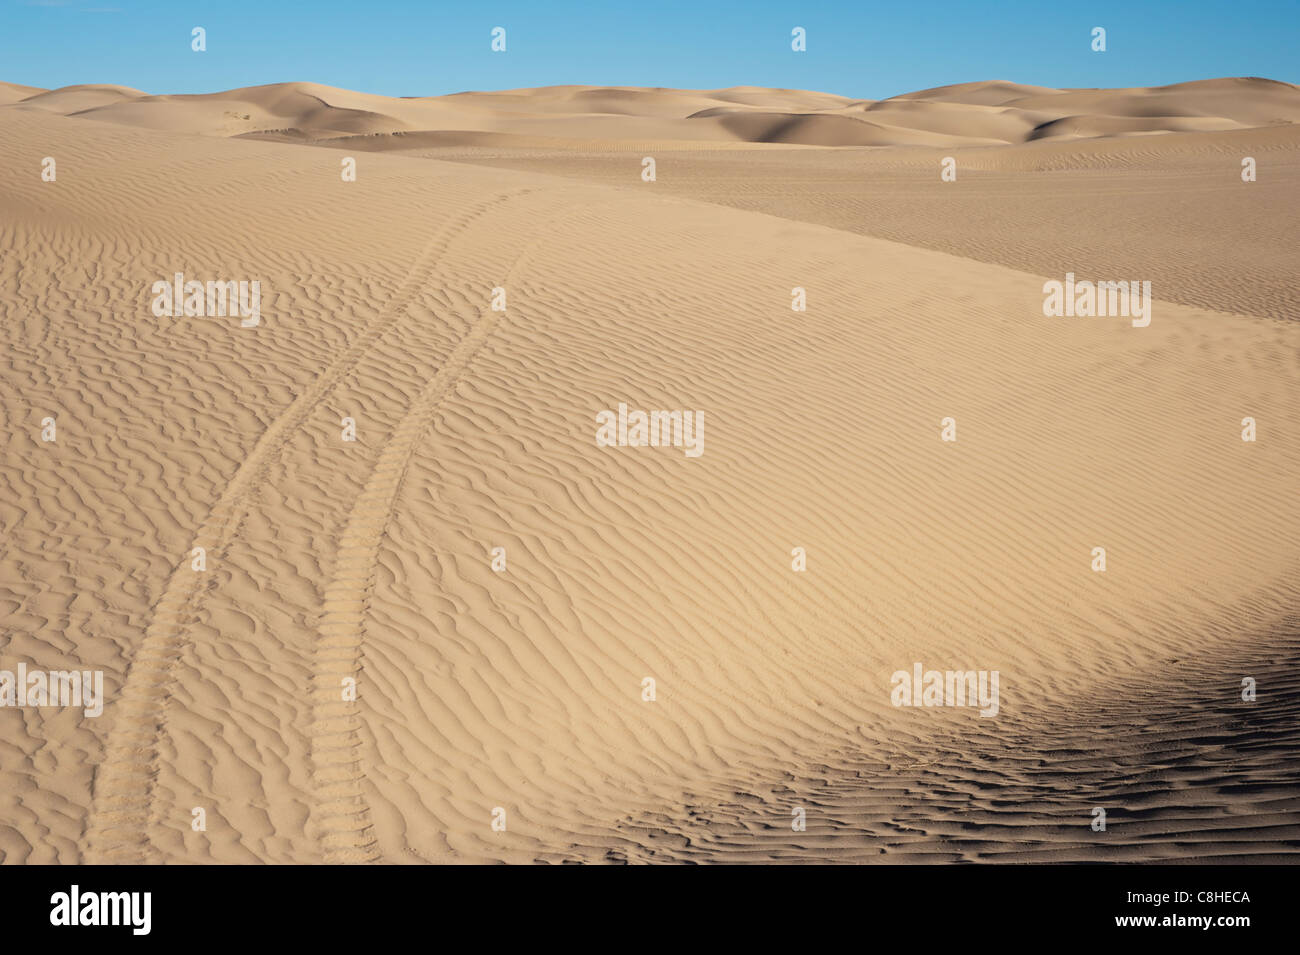 Imperial Sand Dunes Recreation Area - the largest sand dunes in North America - near El Centro, California, USA Stock Photo